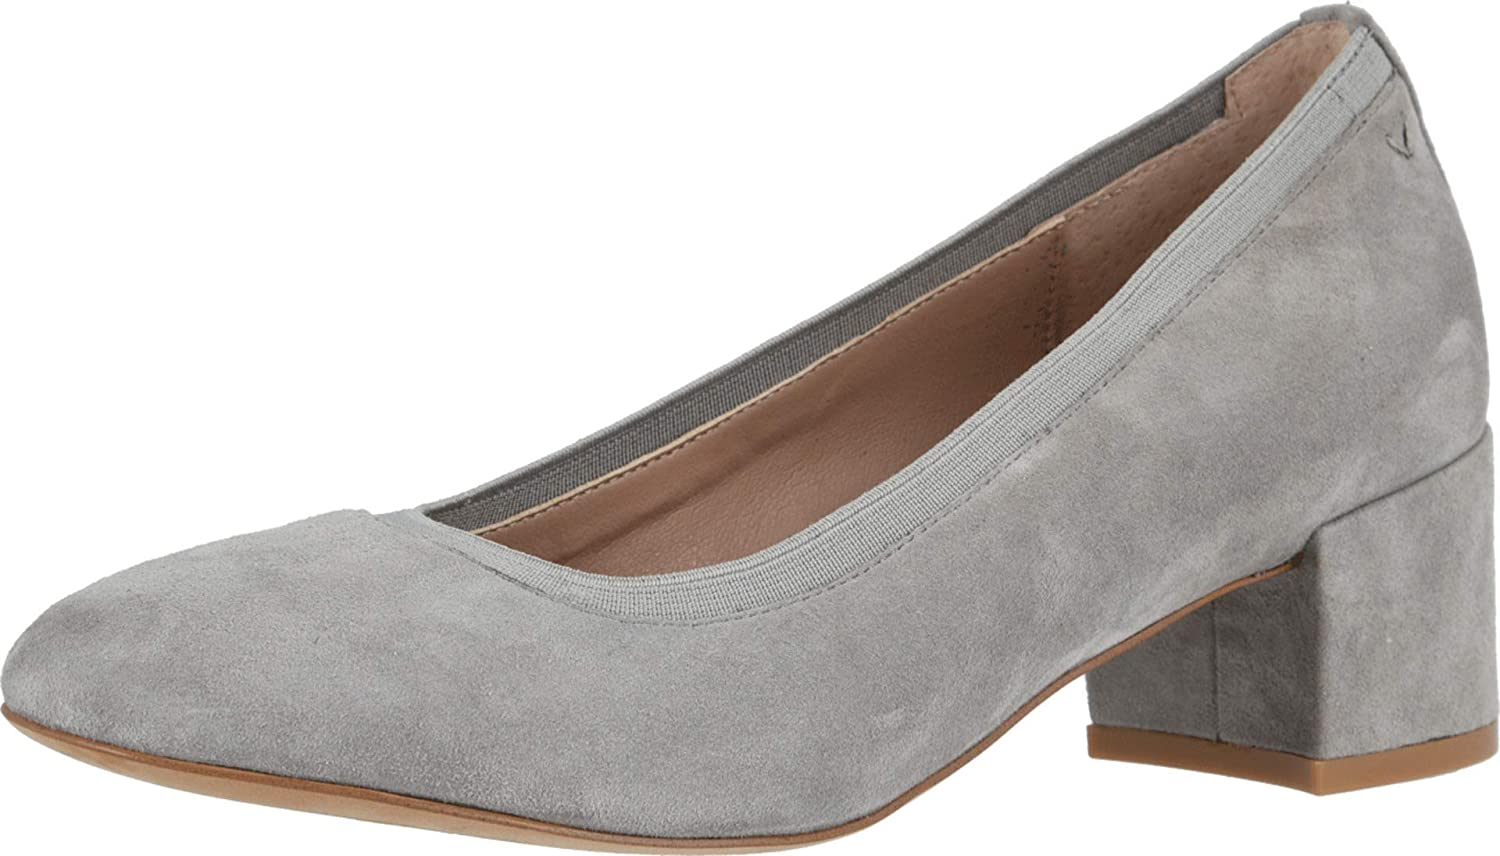 Vionic Women's Olympia Natalie Pumps - Ladies Heels with Concealed Orthotic Arch Support